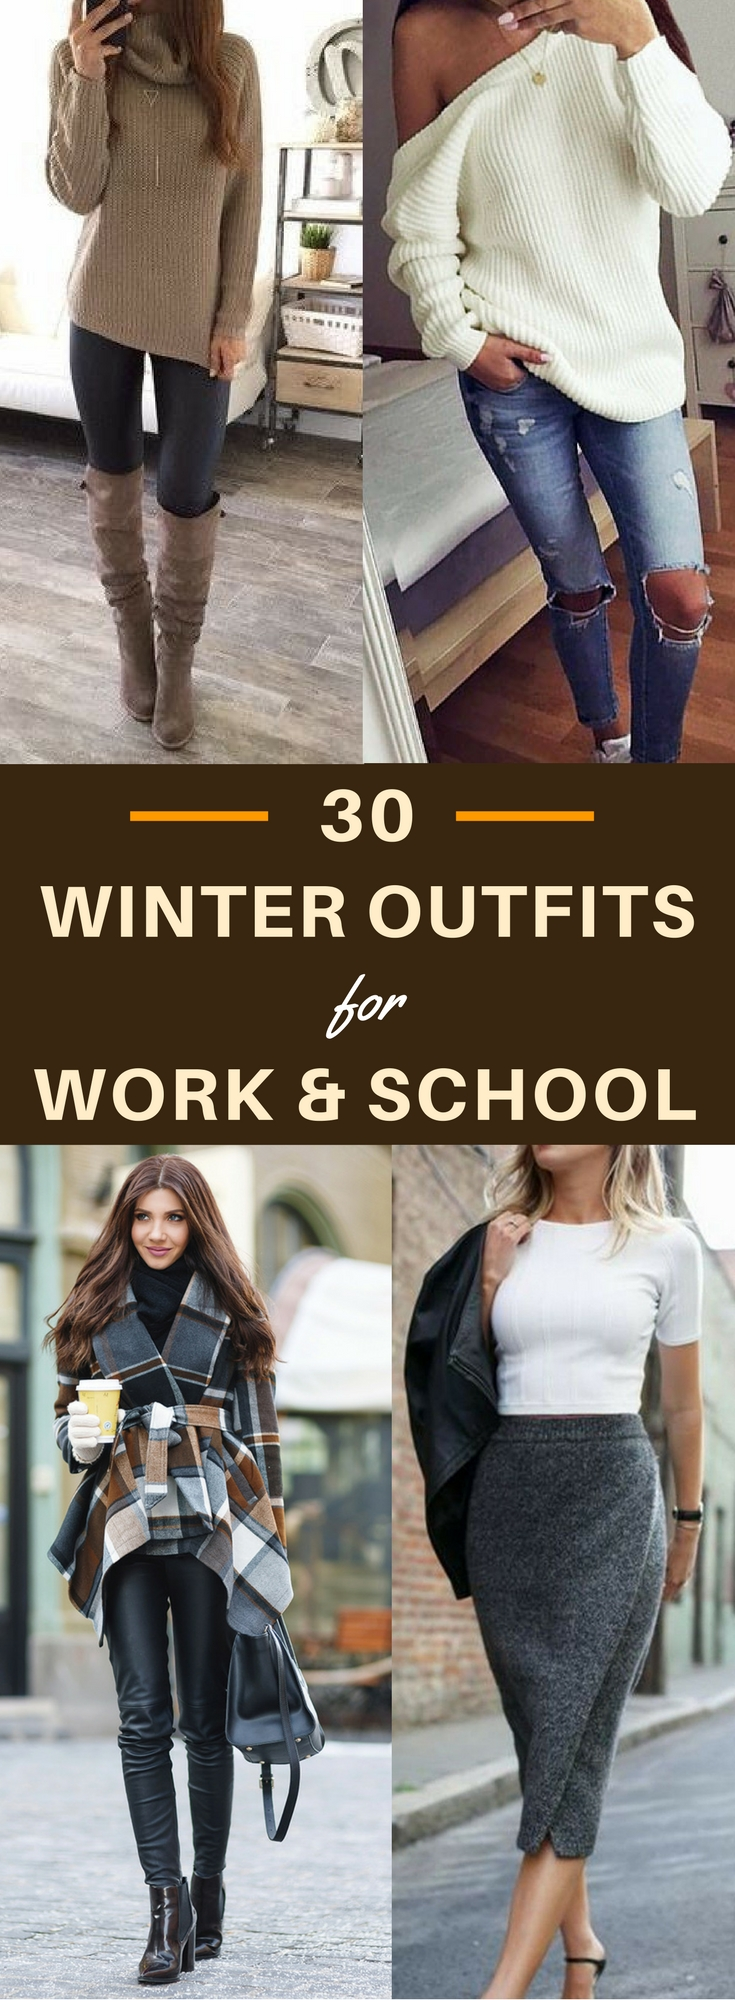 10 Nice Winter Outfit Ideas For School 30 decent yet chic winter outfits for work and school 2020